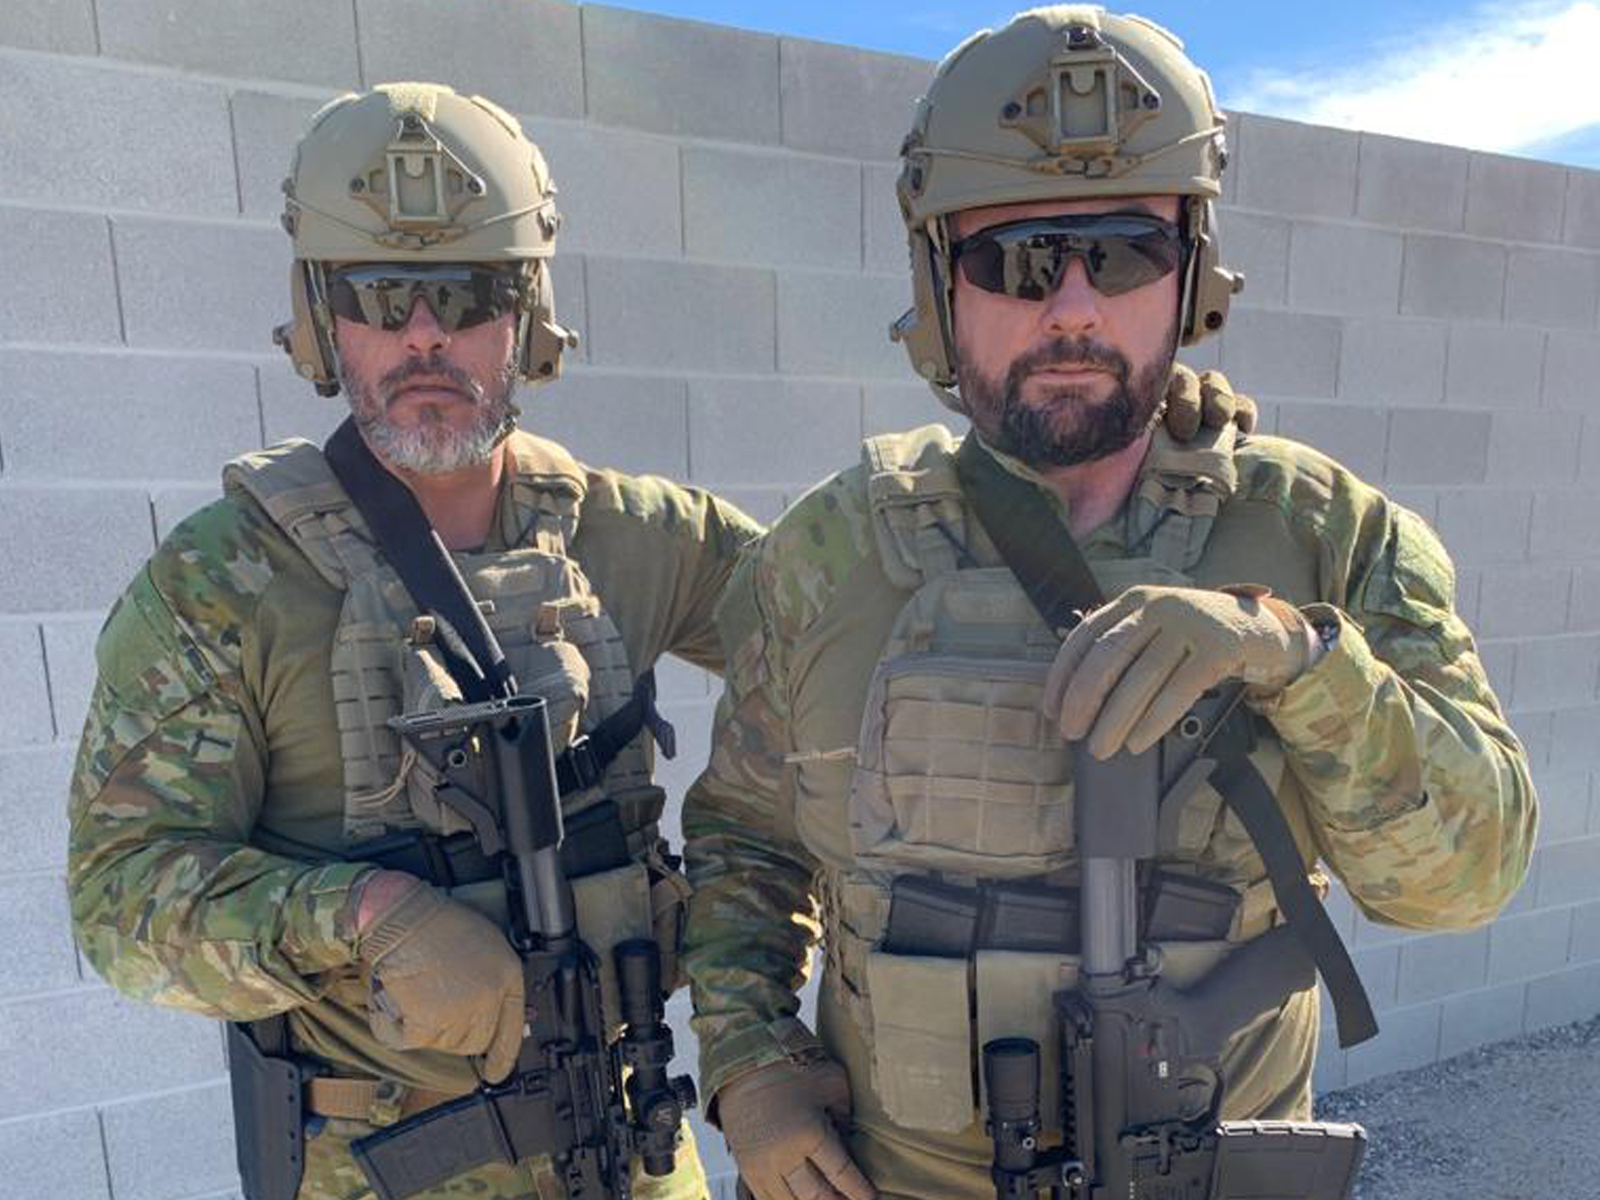 KEF Mission Specialist trainer Reece Dewar and KEF CEO Paul Cale testing weaponry in Nevada, USA, for Force Ordnance in Jan. 2019